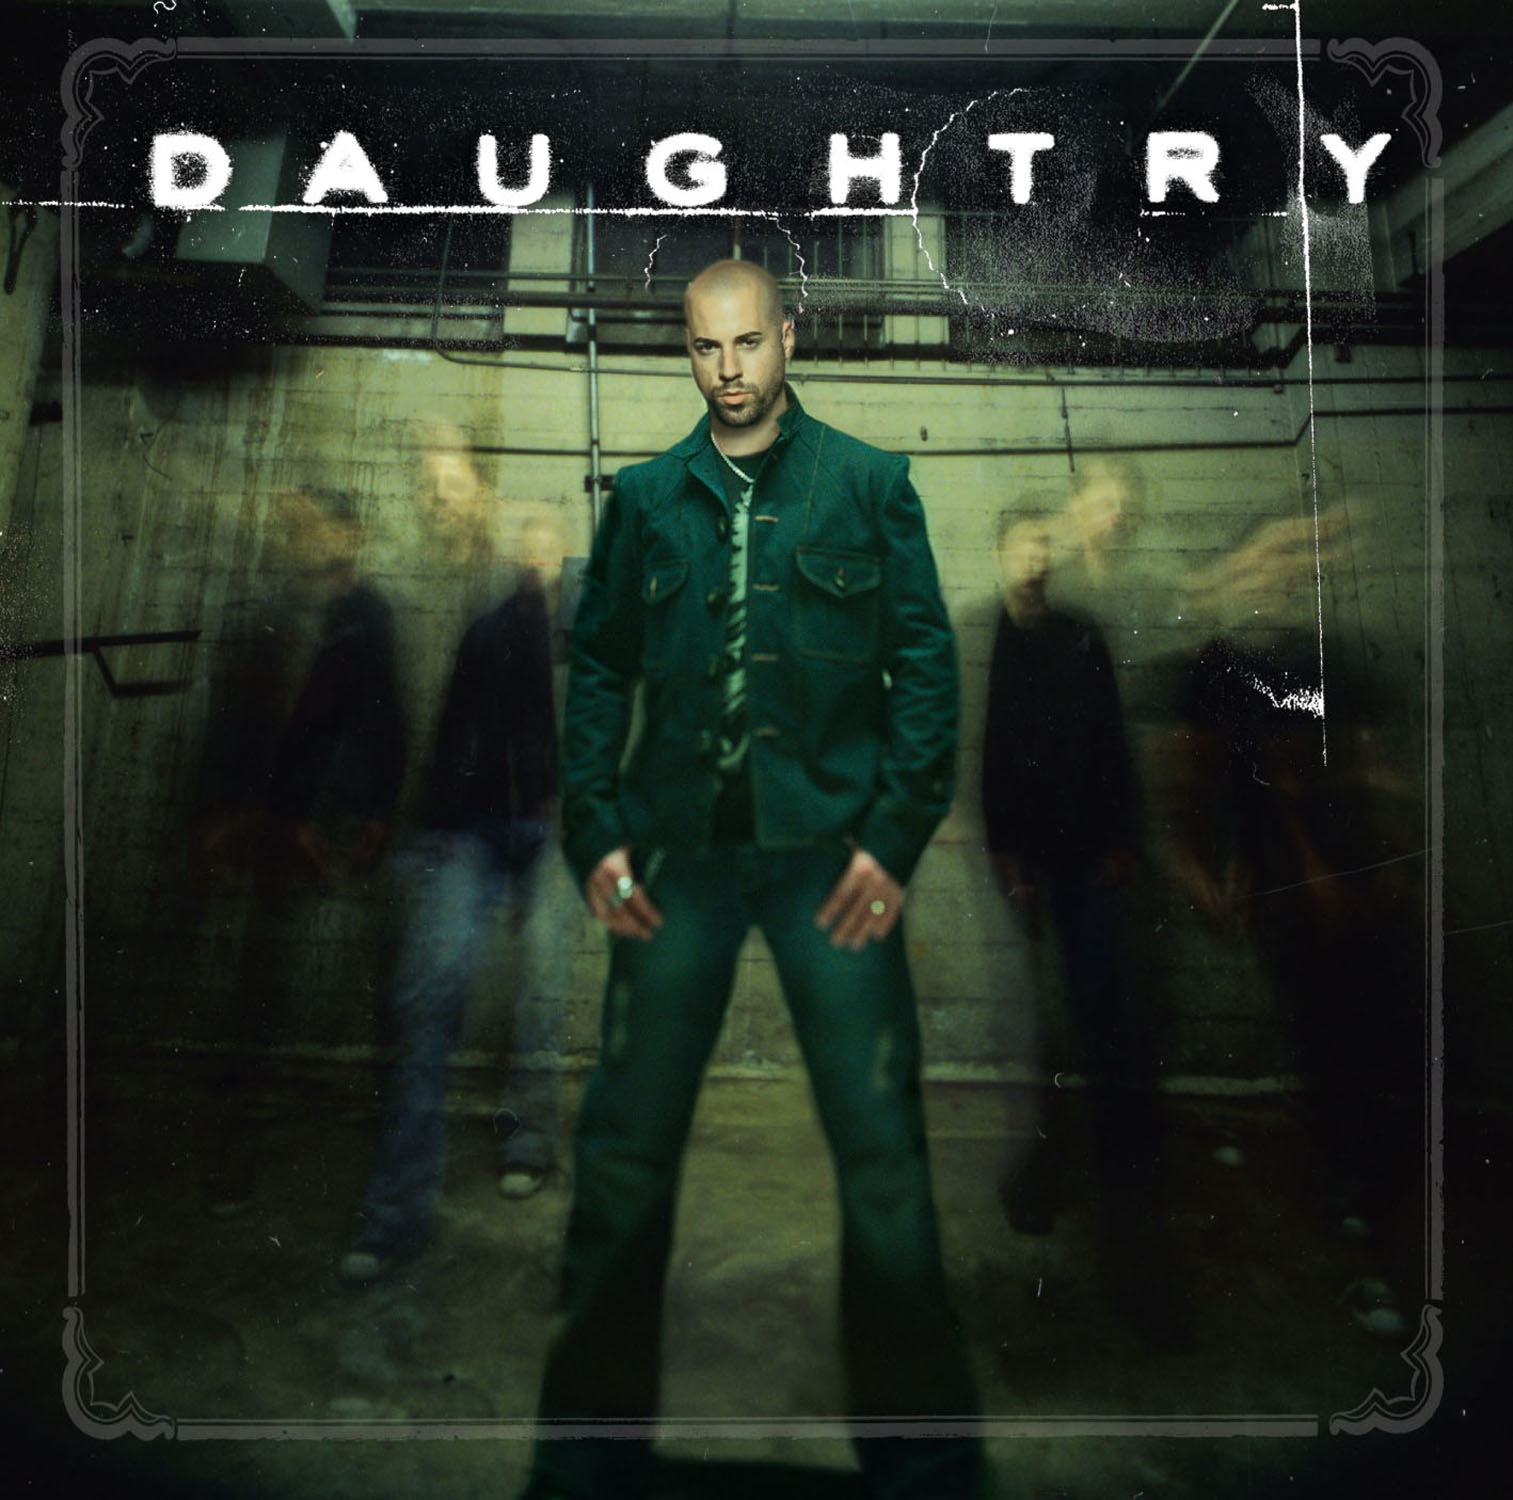 daughtry_daughtry_album.jpg